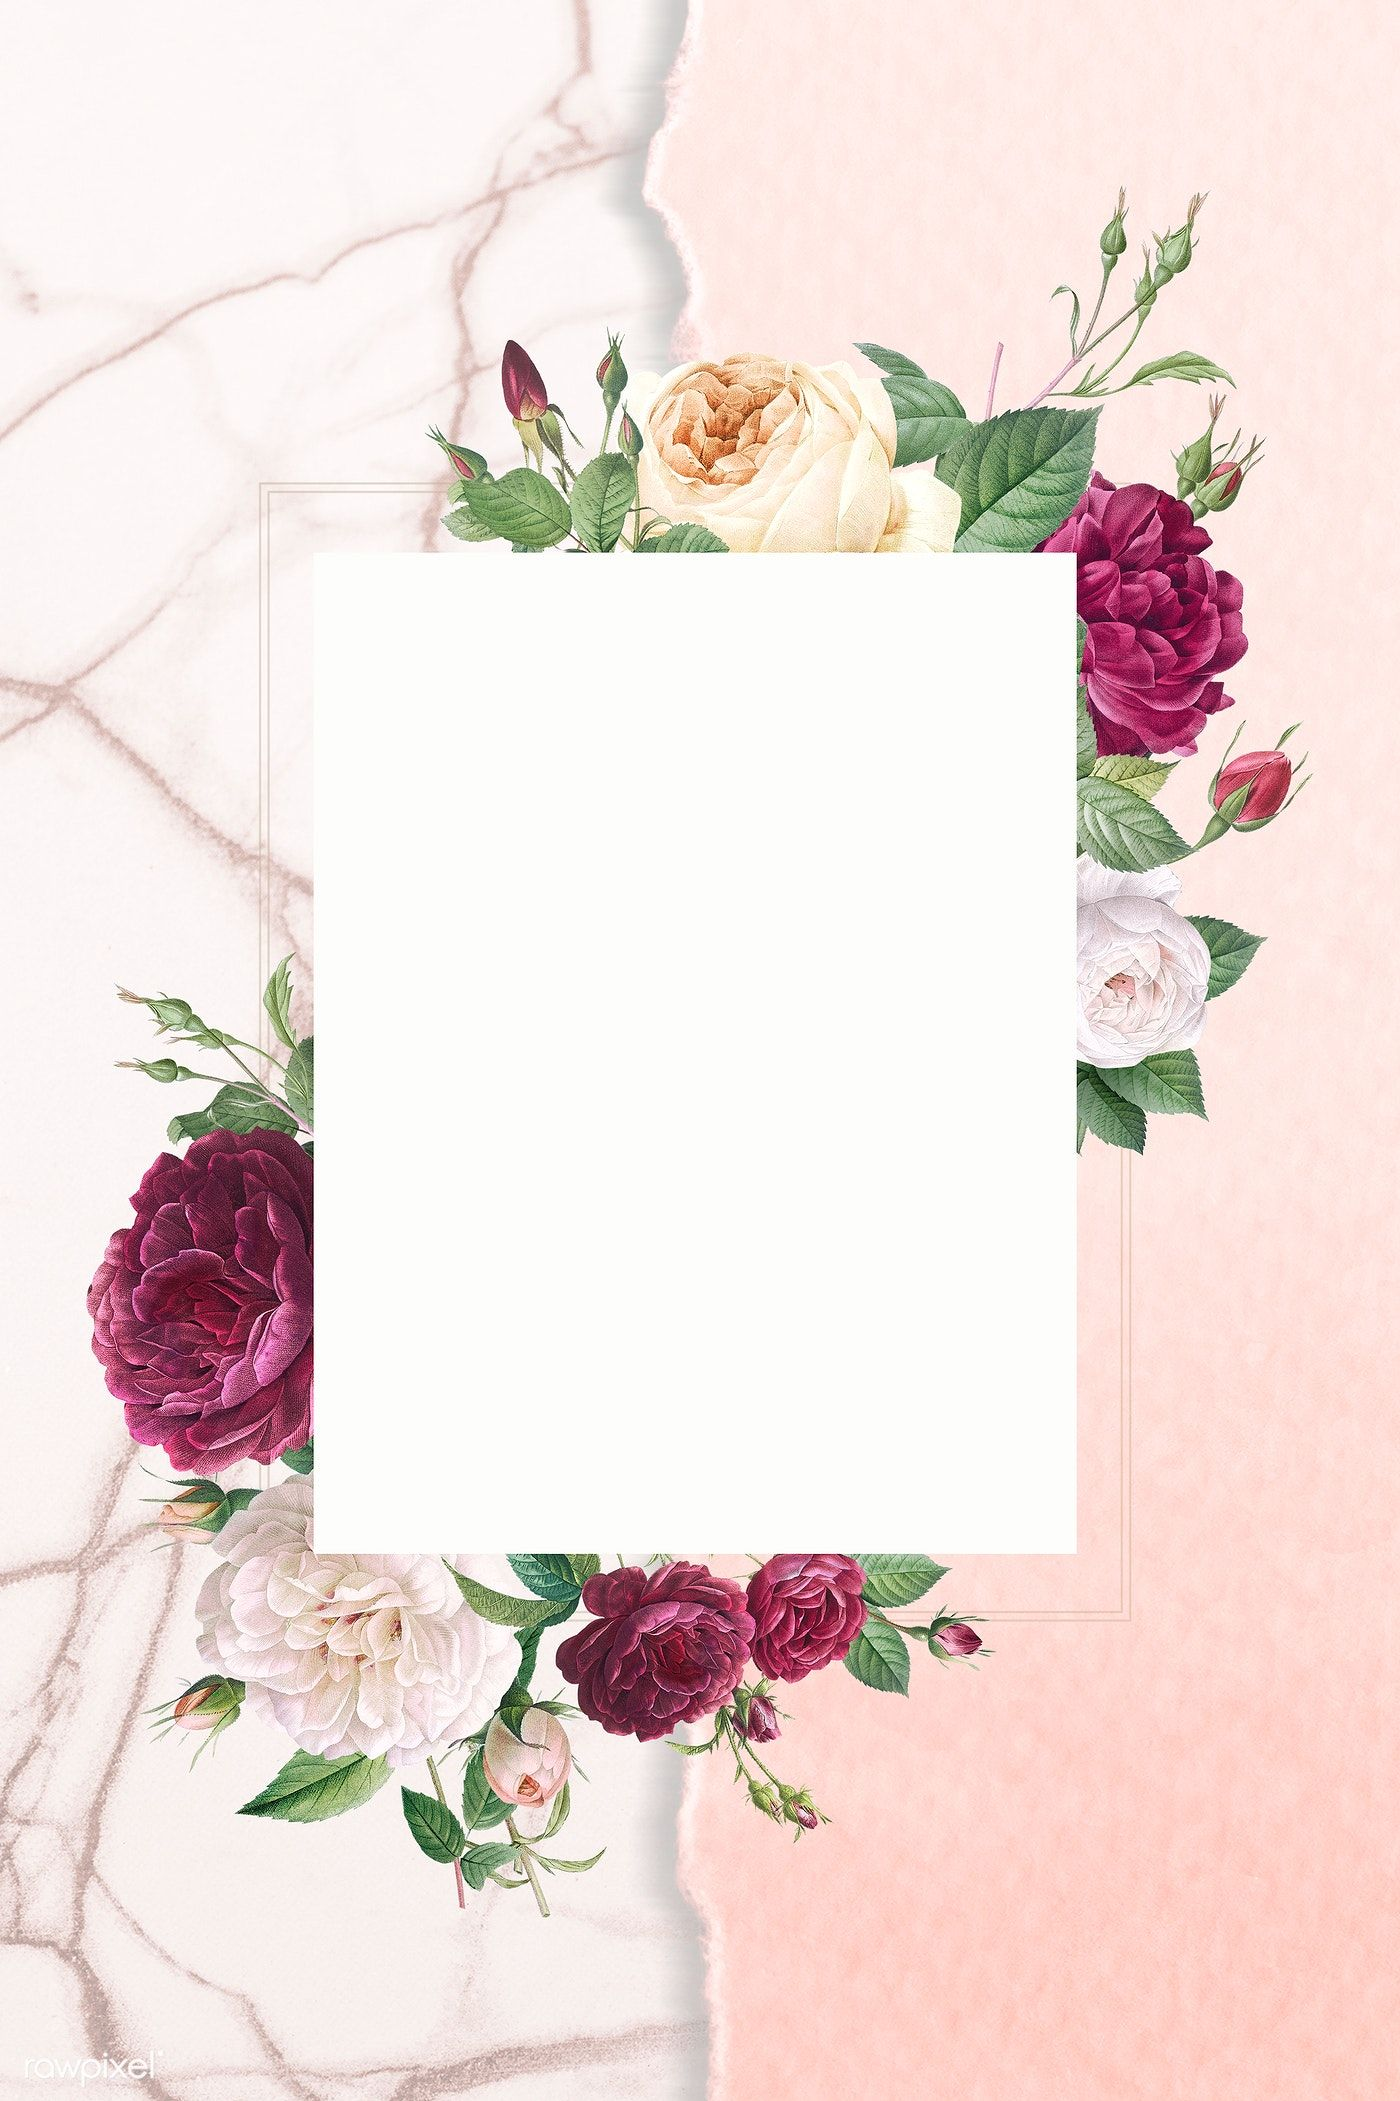 Rose Images Free Vectors Stock Photos Psd